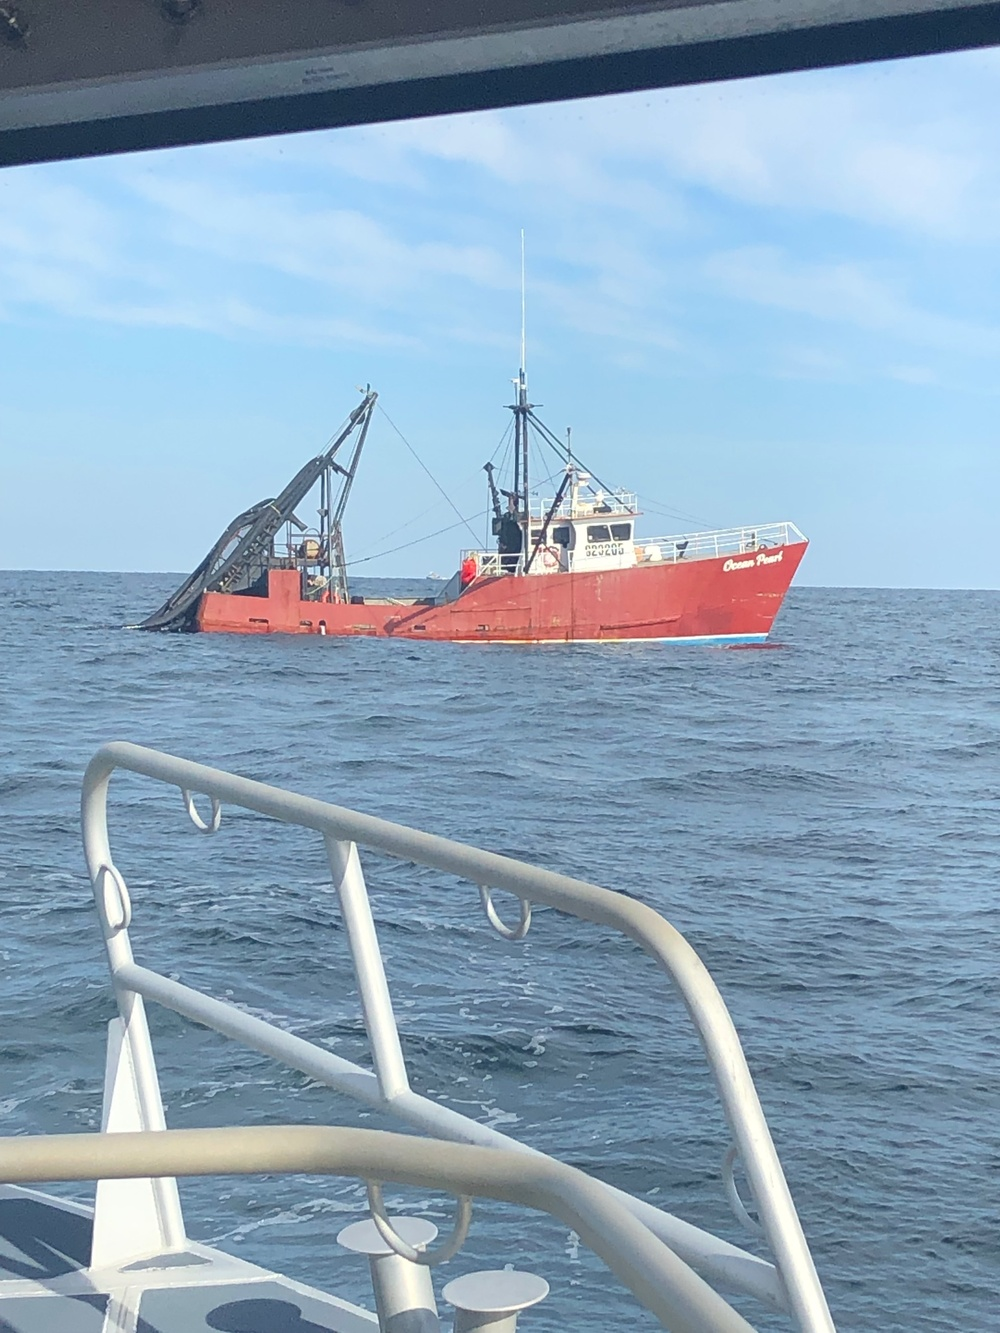 Coast Guard rescues 4 after boat catches fire near Cape May, NJ